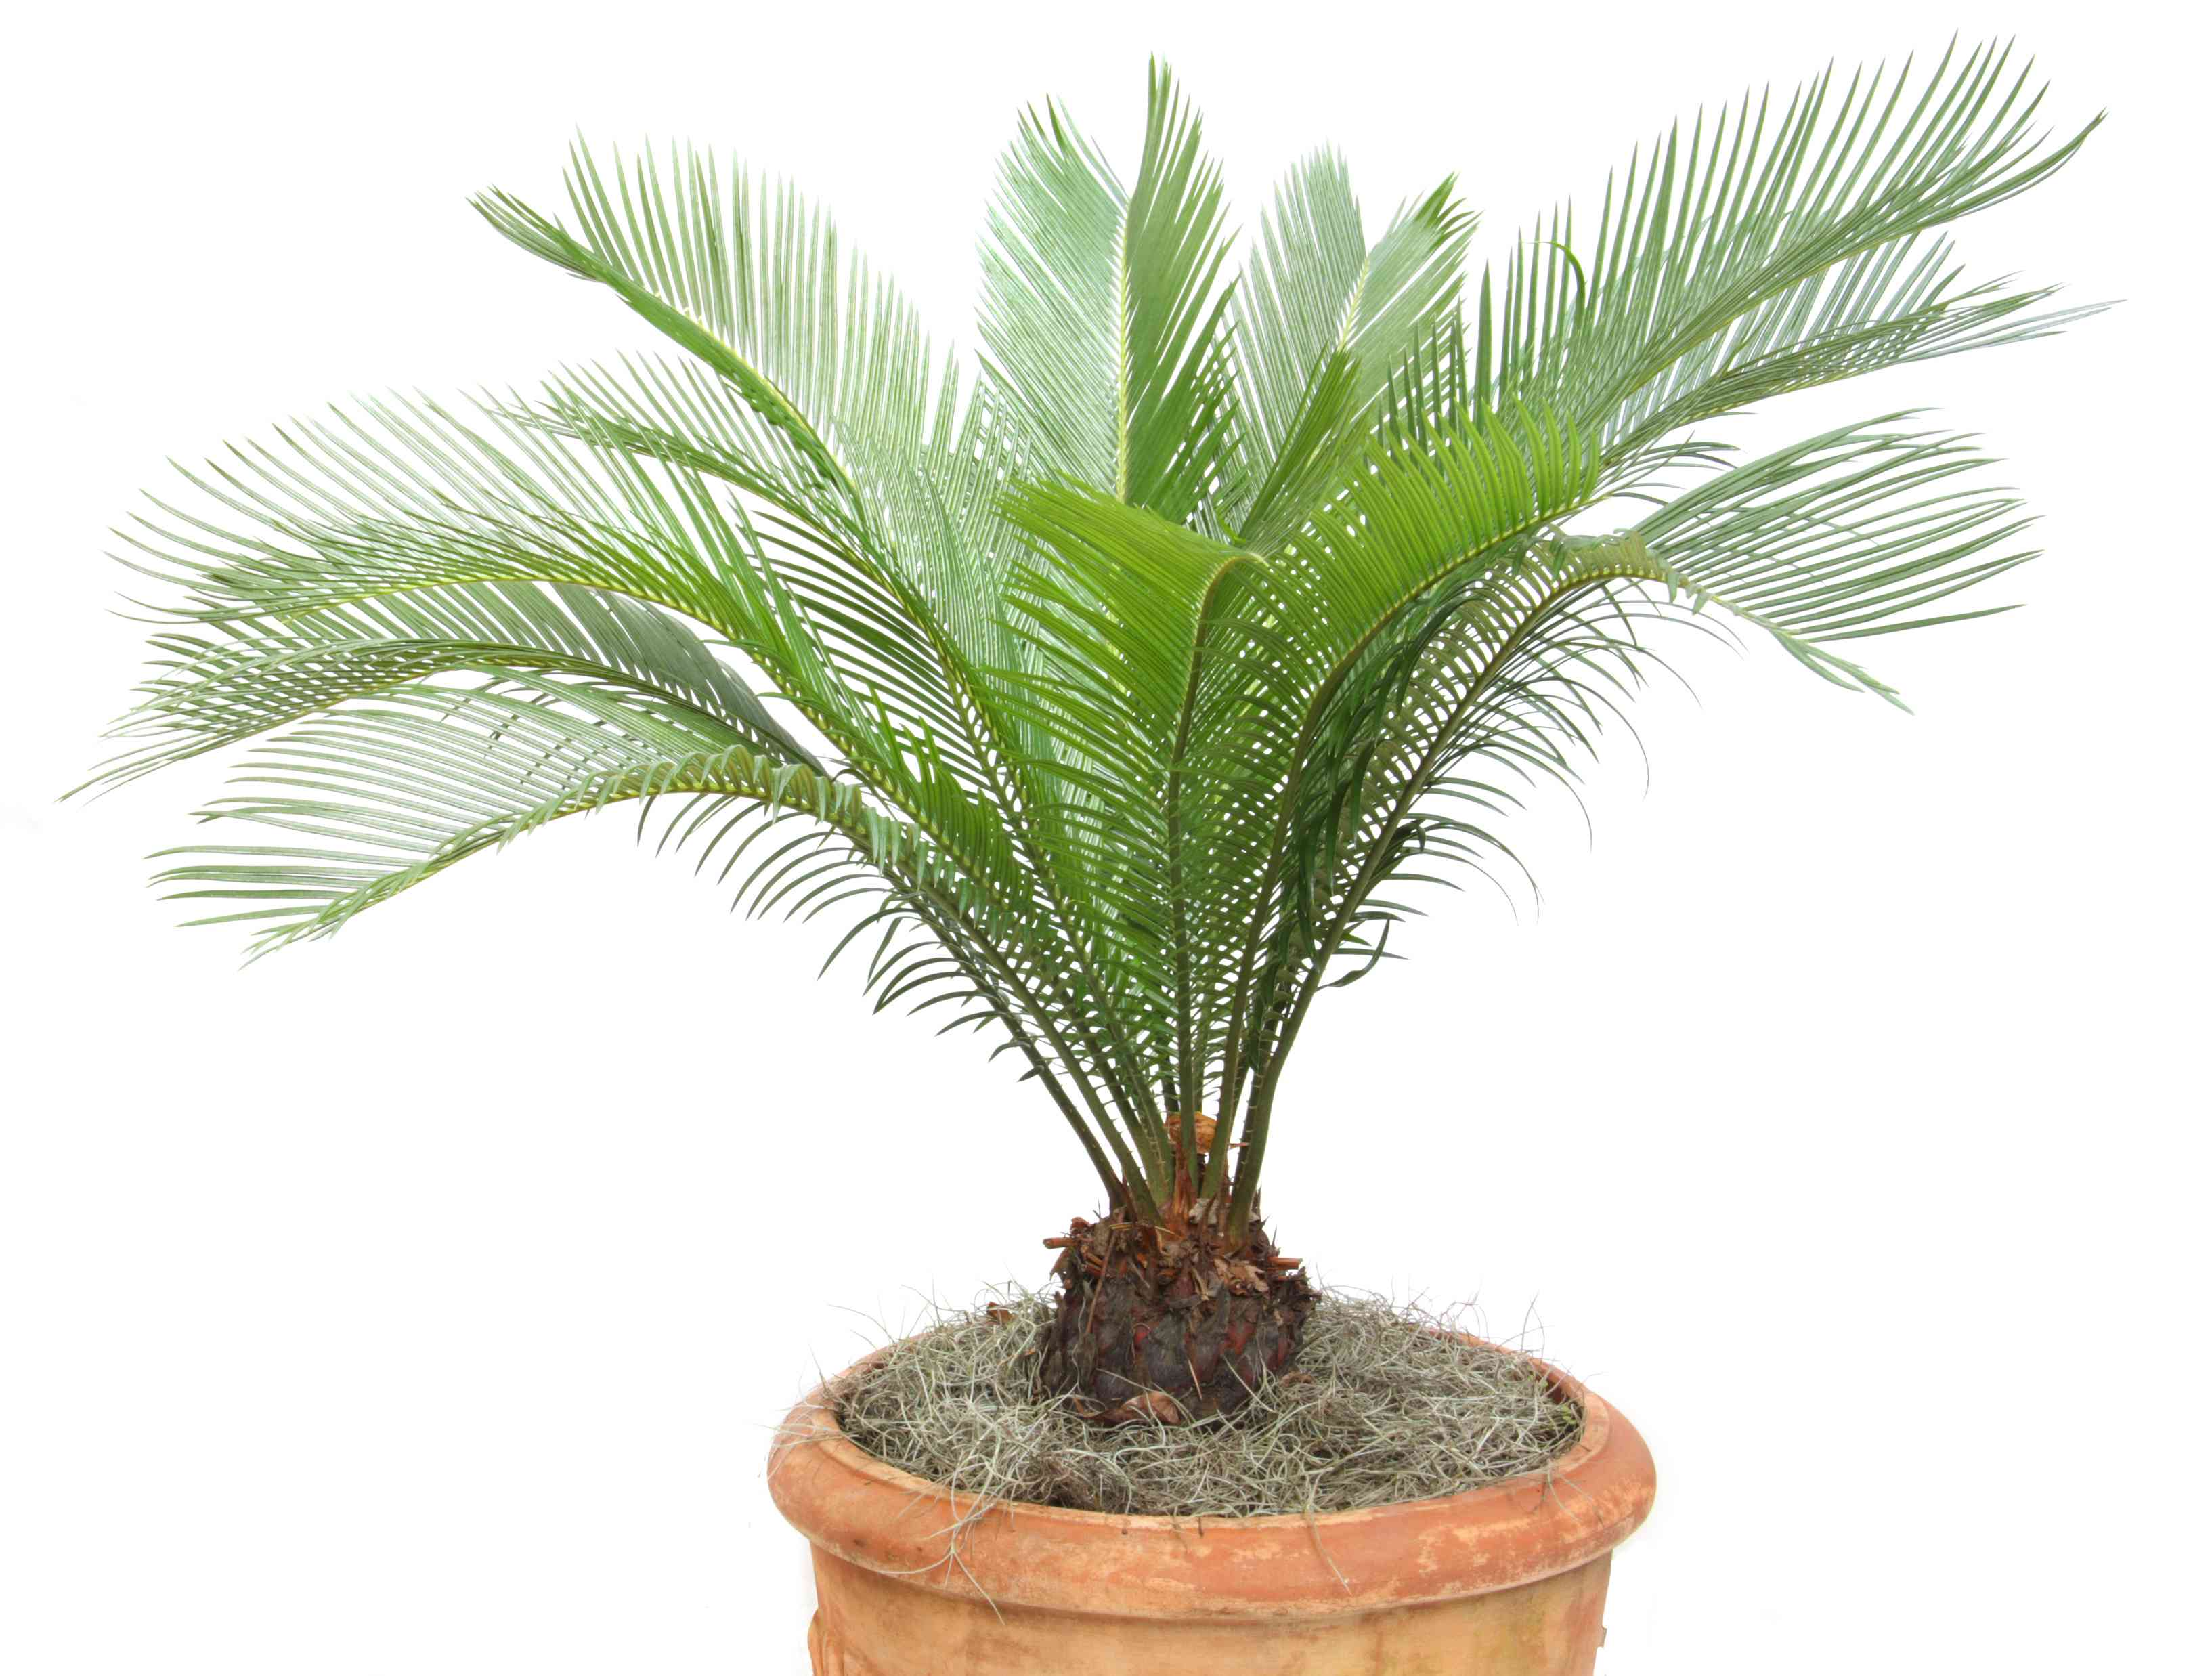 Japanese sago palm in a pot